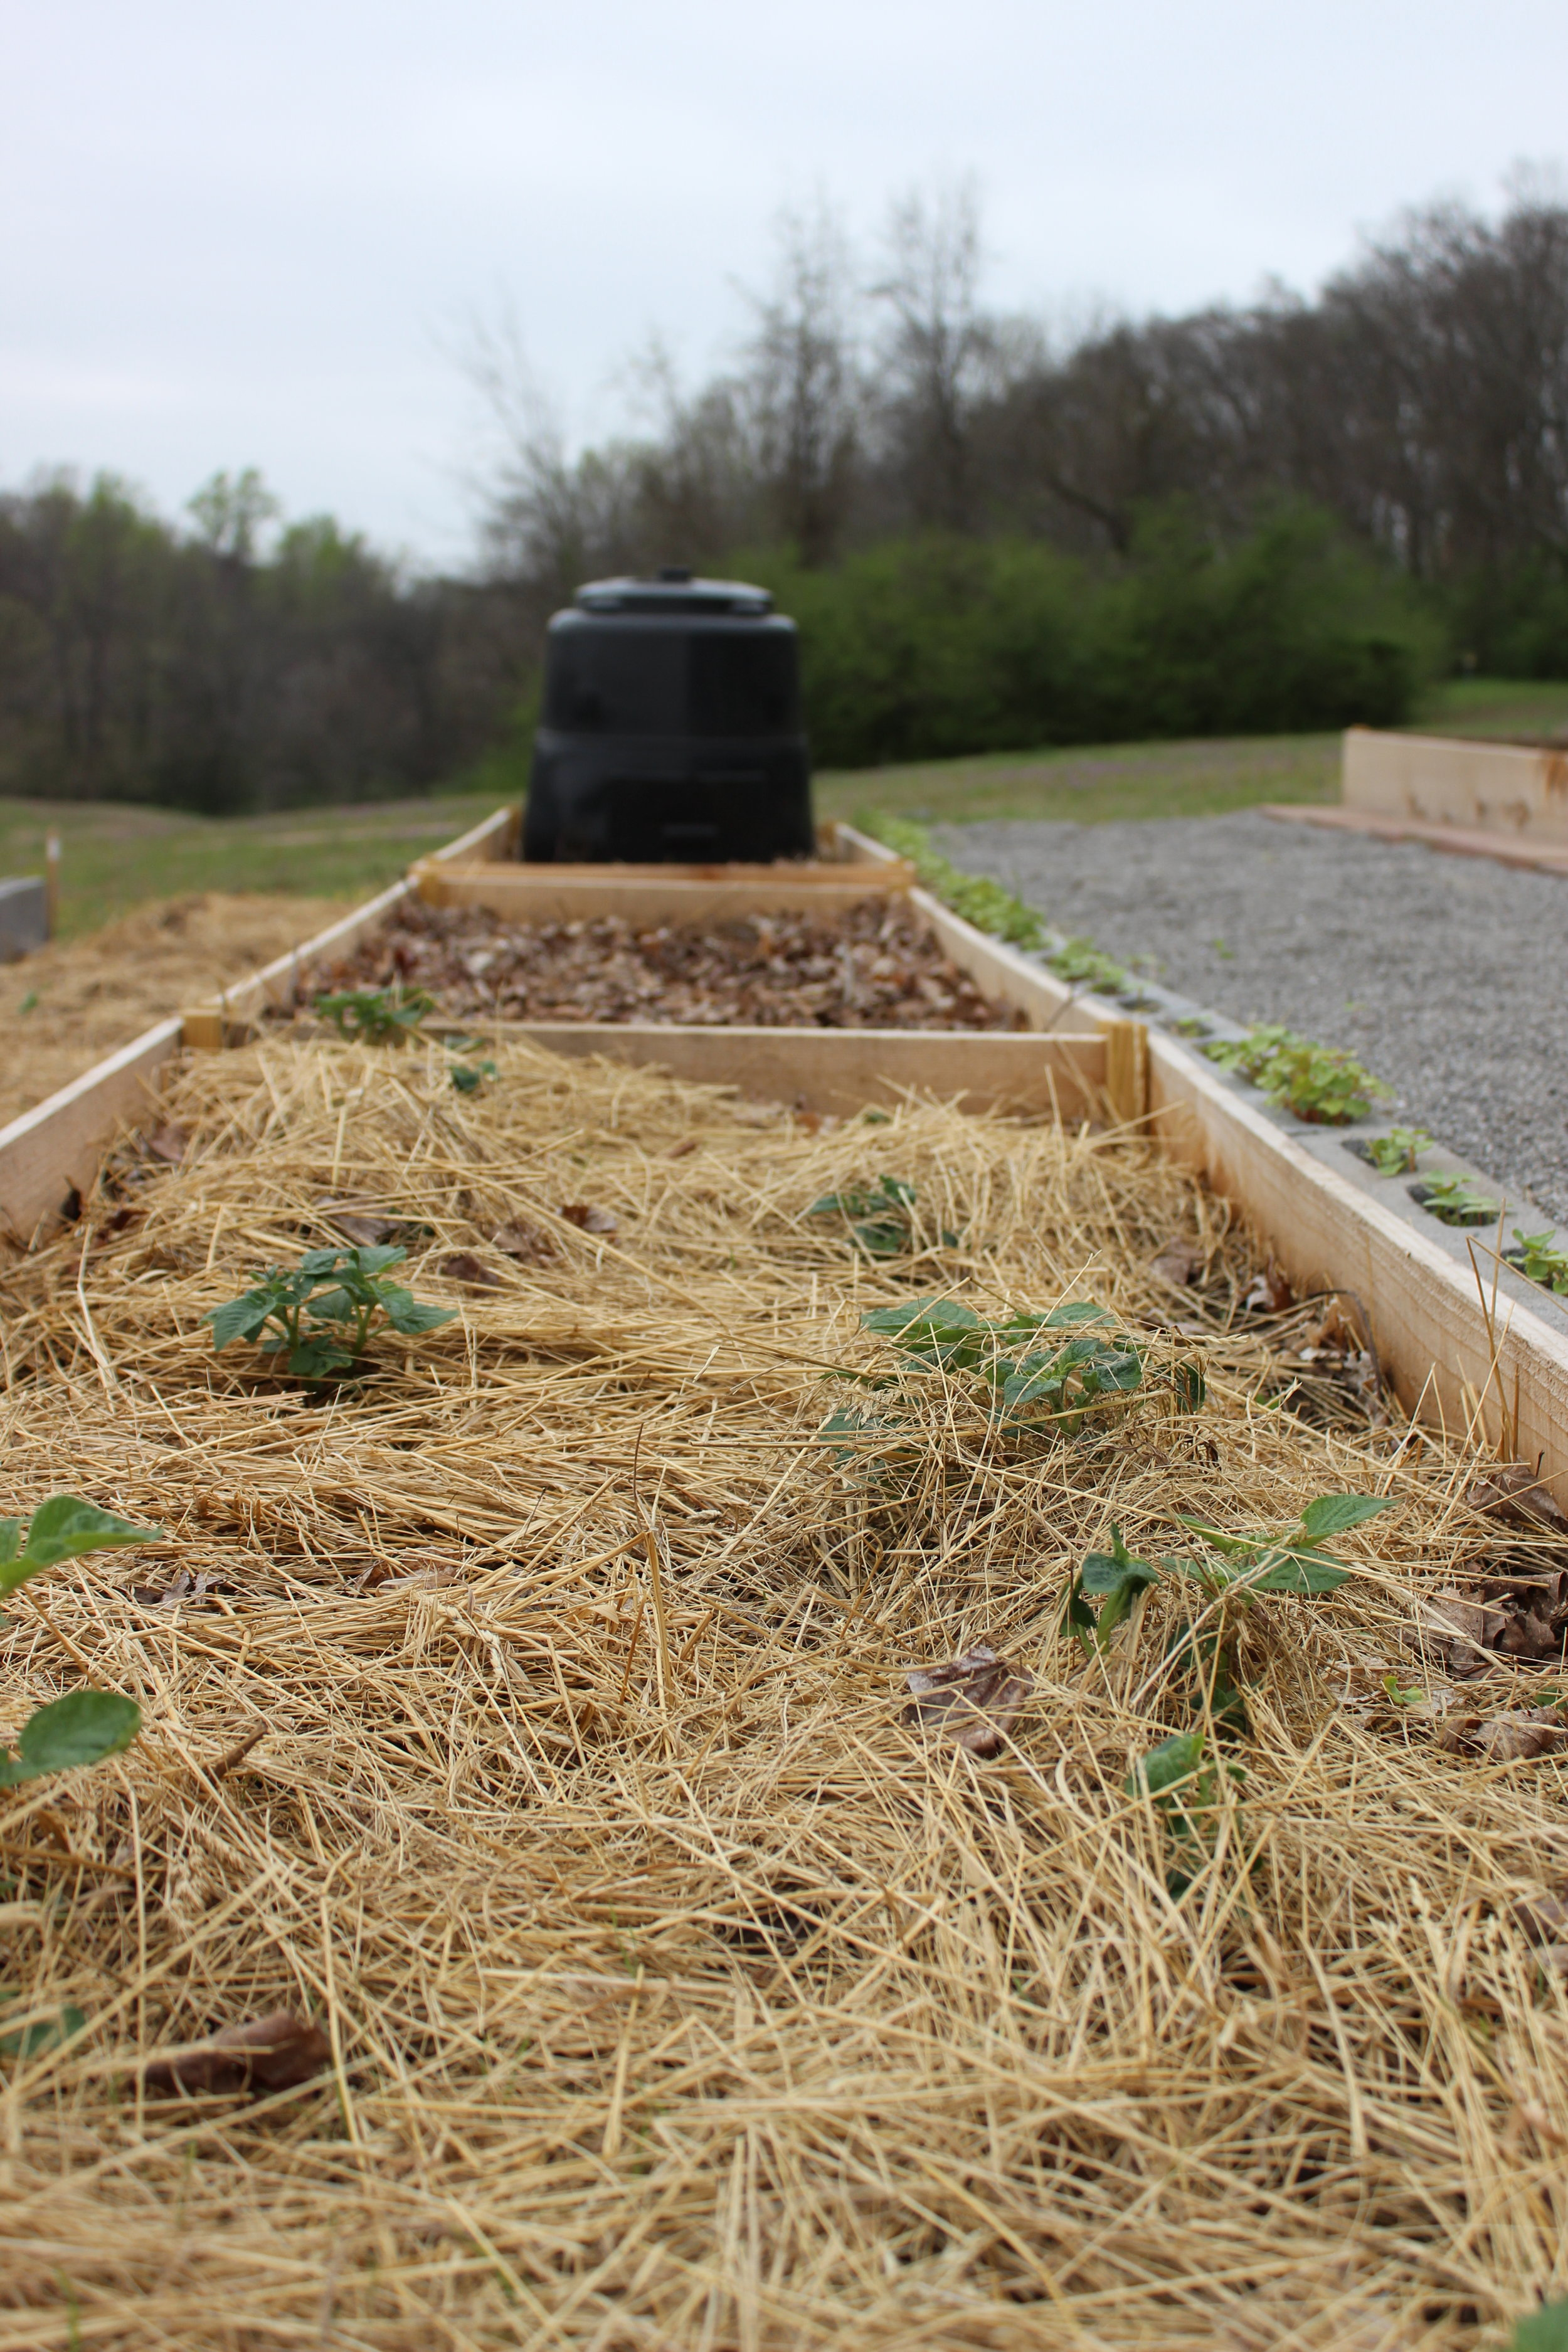 Students wasted no time planting in potatoes!